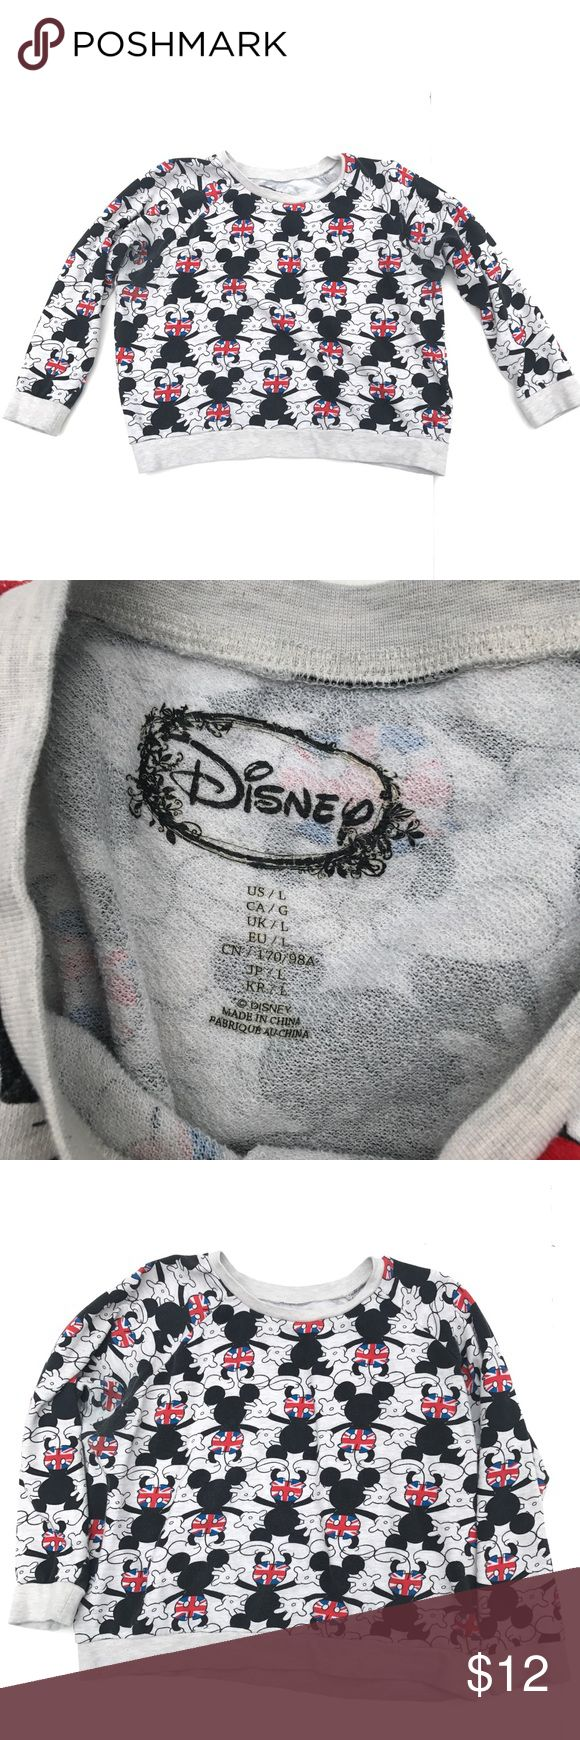 """British Mickey Mouse Sweatshirt, Junior Size Large Gently worn British Mickey Mouse shirt in junior size large.         Measurements - 23"""" armpit to armpit 19"""" total length from back of collar 22"""" top collar to bottom sleeve This shirt has shorter sleeves on me. I have to push them up to the elbows. Unless you have short arms they will probably need to be pushed up. Light pilling and some slight wash wear, especially near side armpit areas. Price reflects slight wear. Thanks for looking…"""